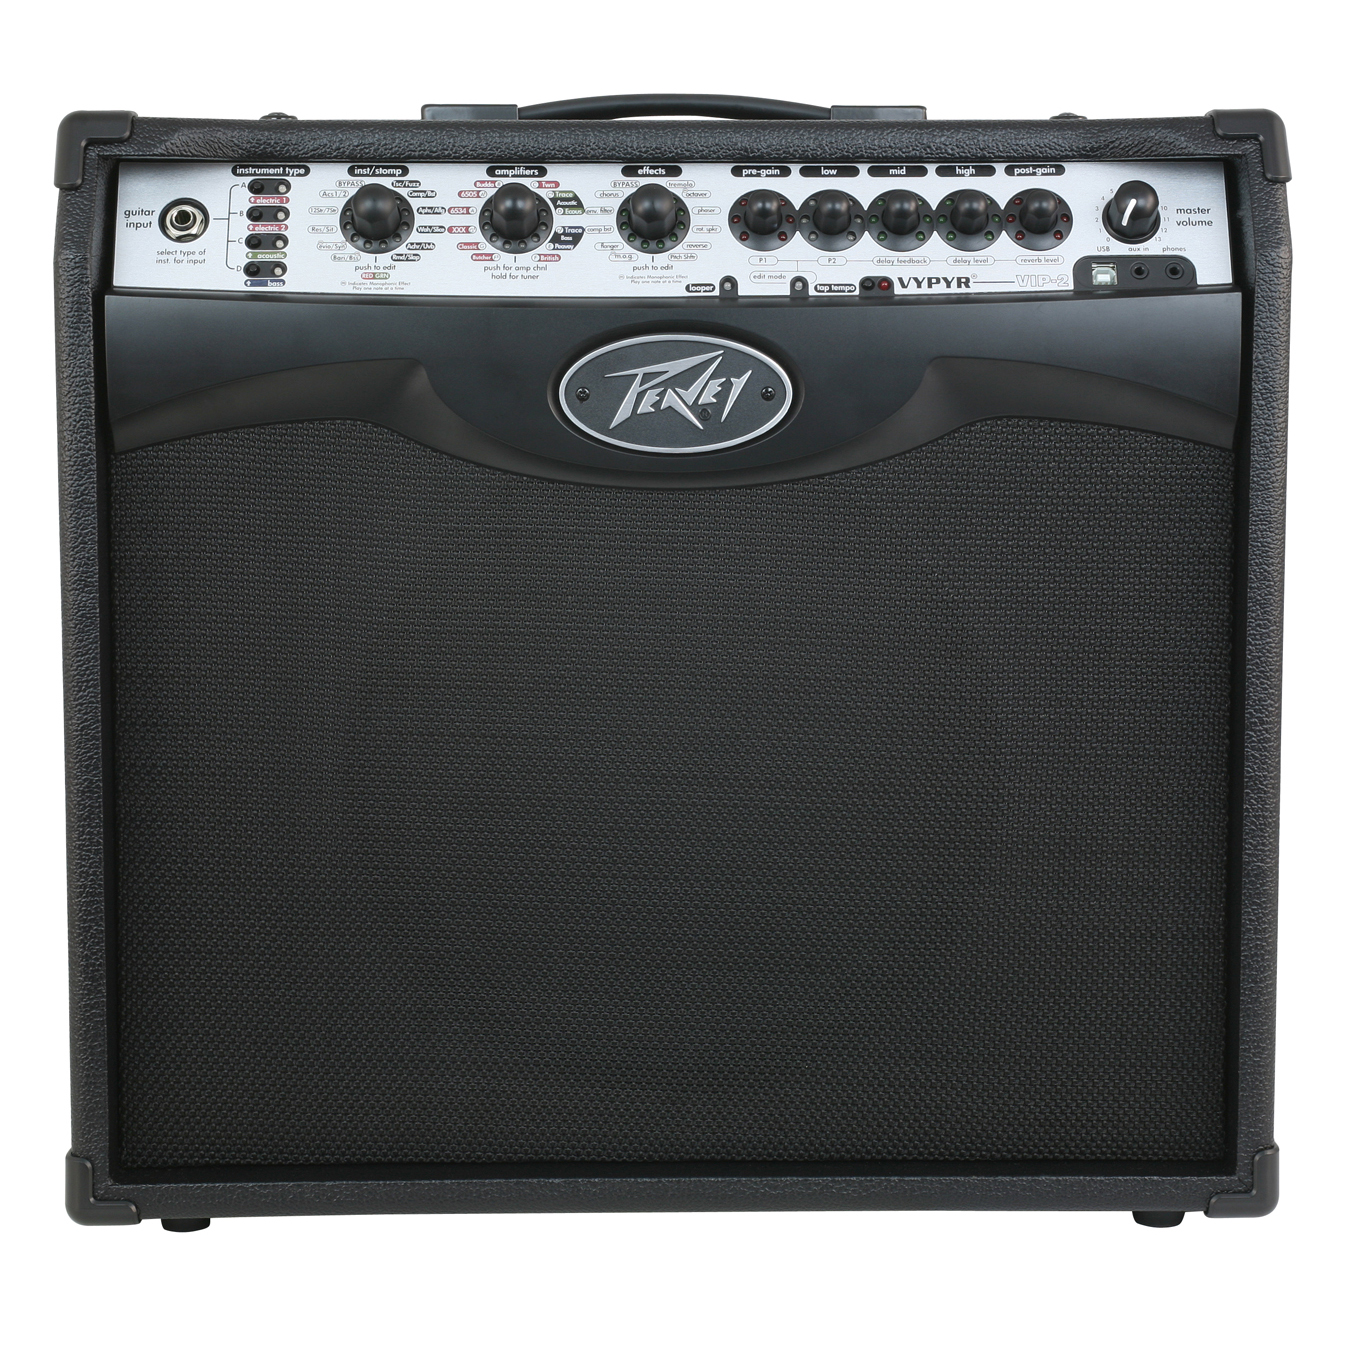 peavey vypyr vip 2 modeling instrument guitar bass 40 watt 12 amplifier amp ebay. Black Bedroom Furniture Sets. Home Design Ideas